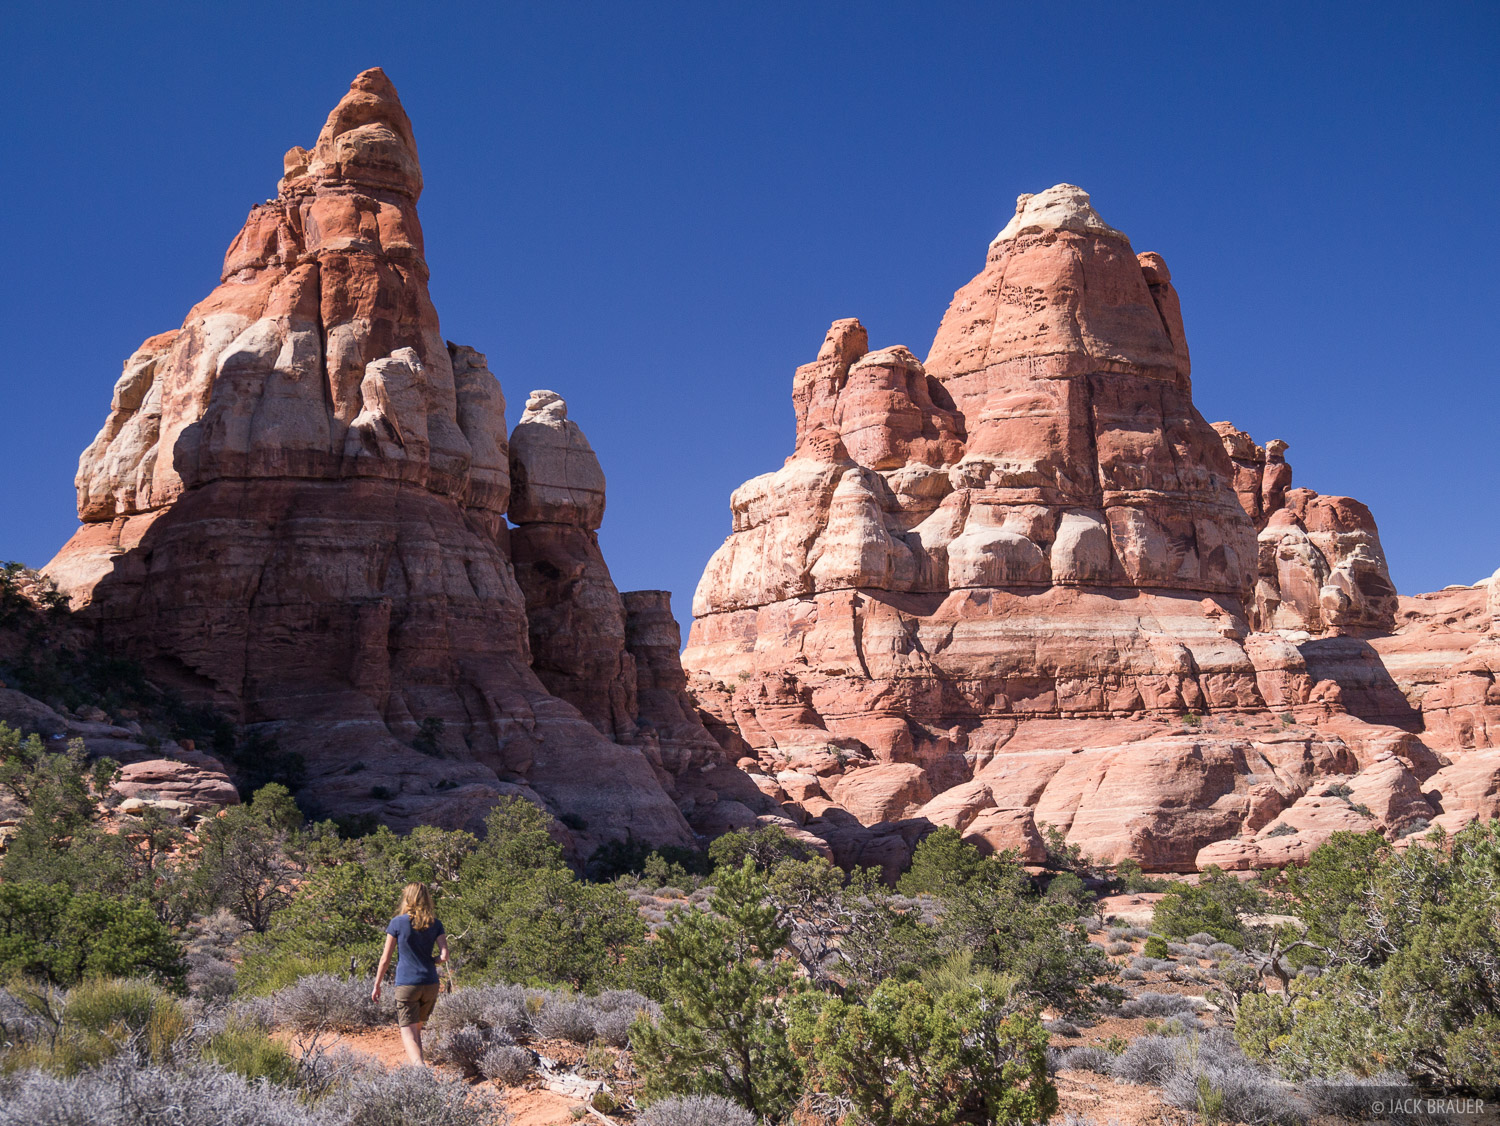 Canyonlands National Park, Utah, Needles District, hiking, photo